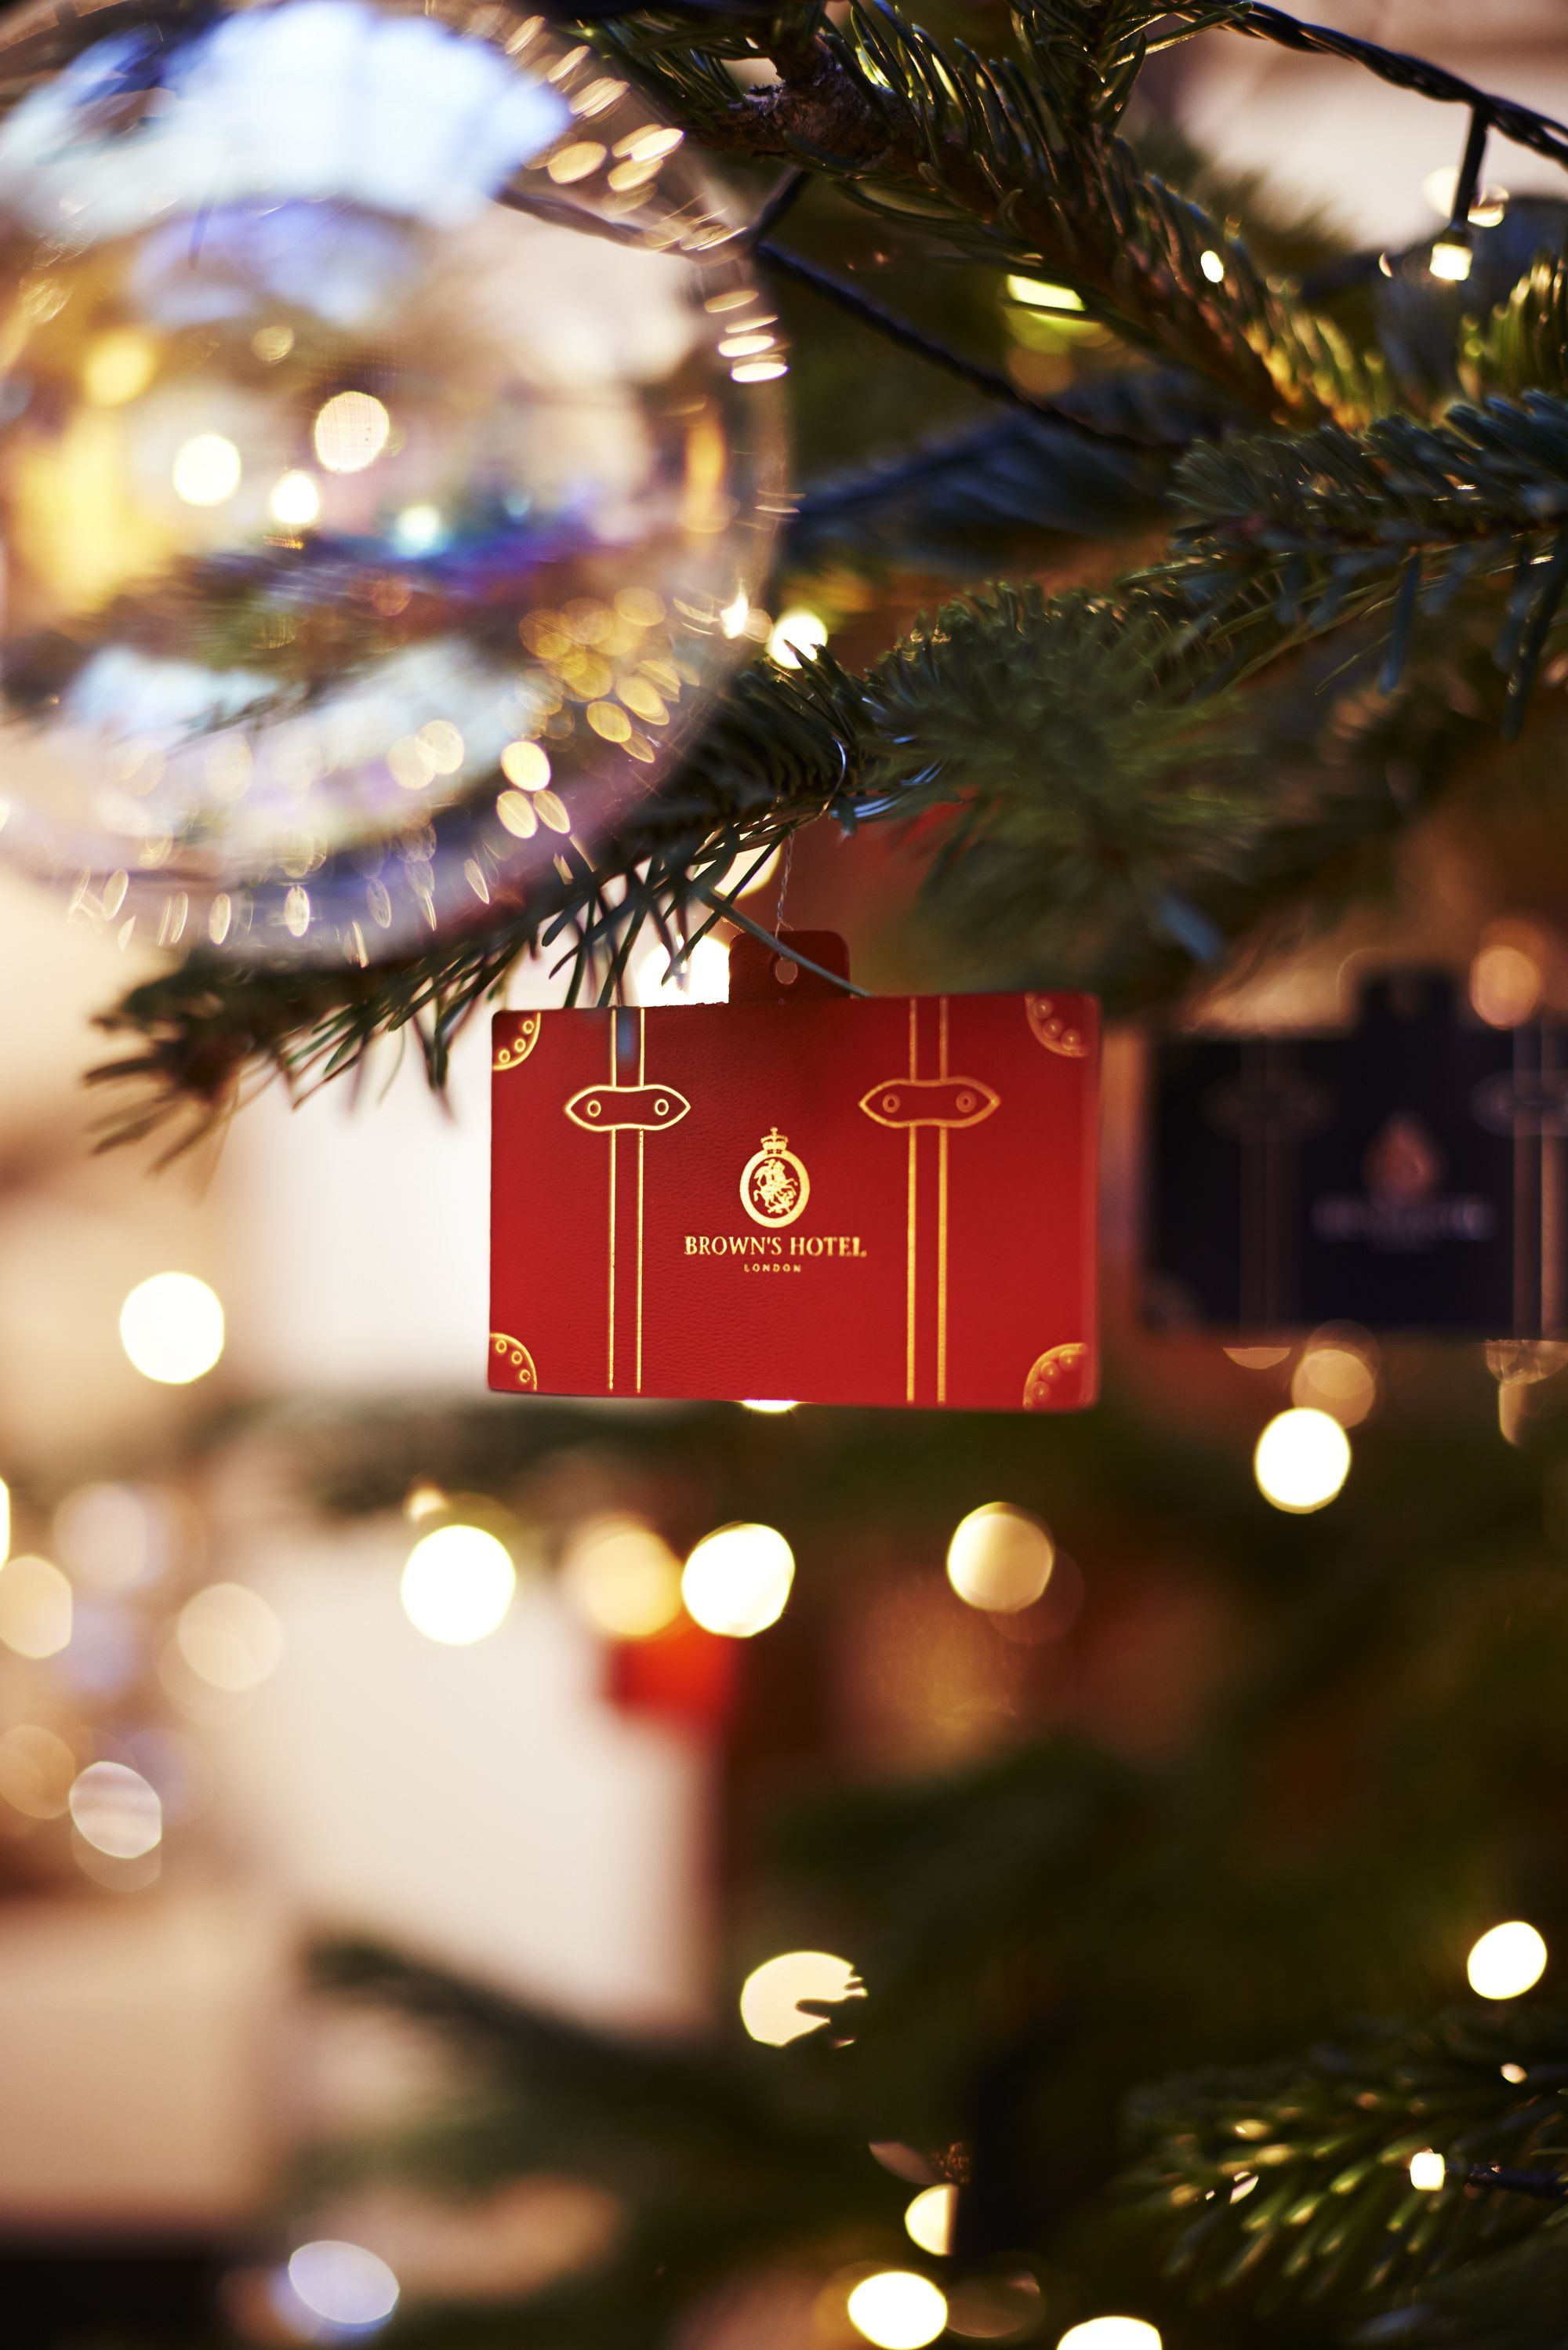 Luxury travel-themed Christmas • • • Globe Trotter & Brown's Hotel, 2014